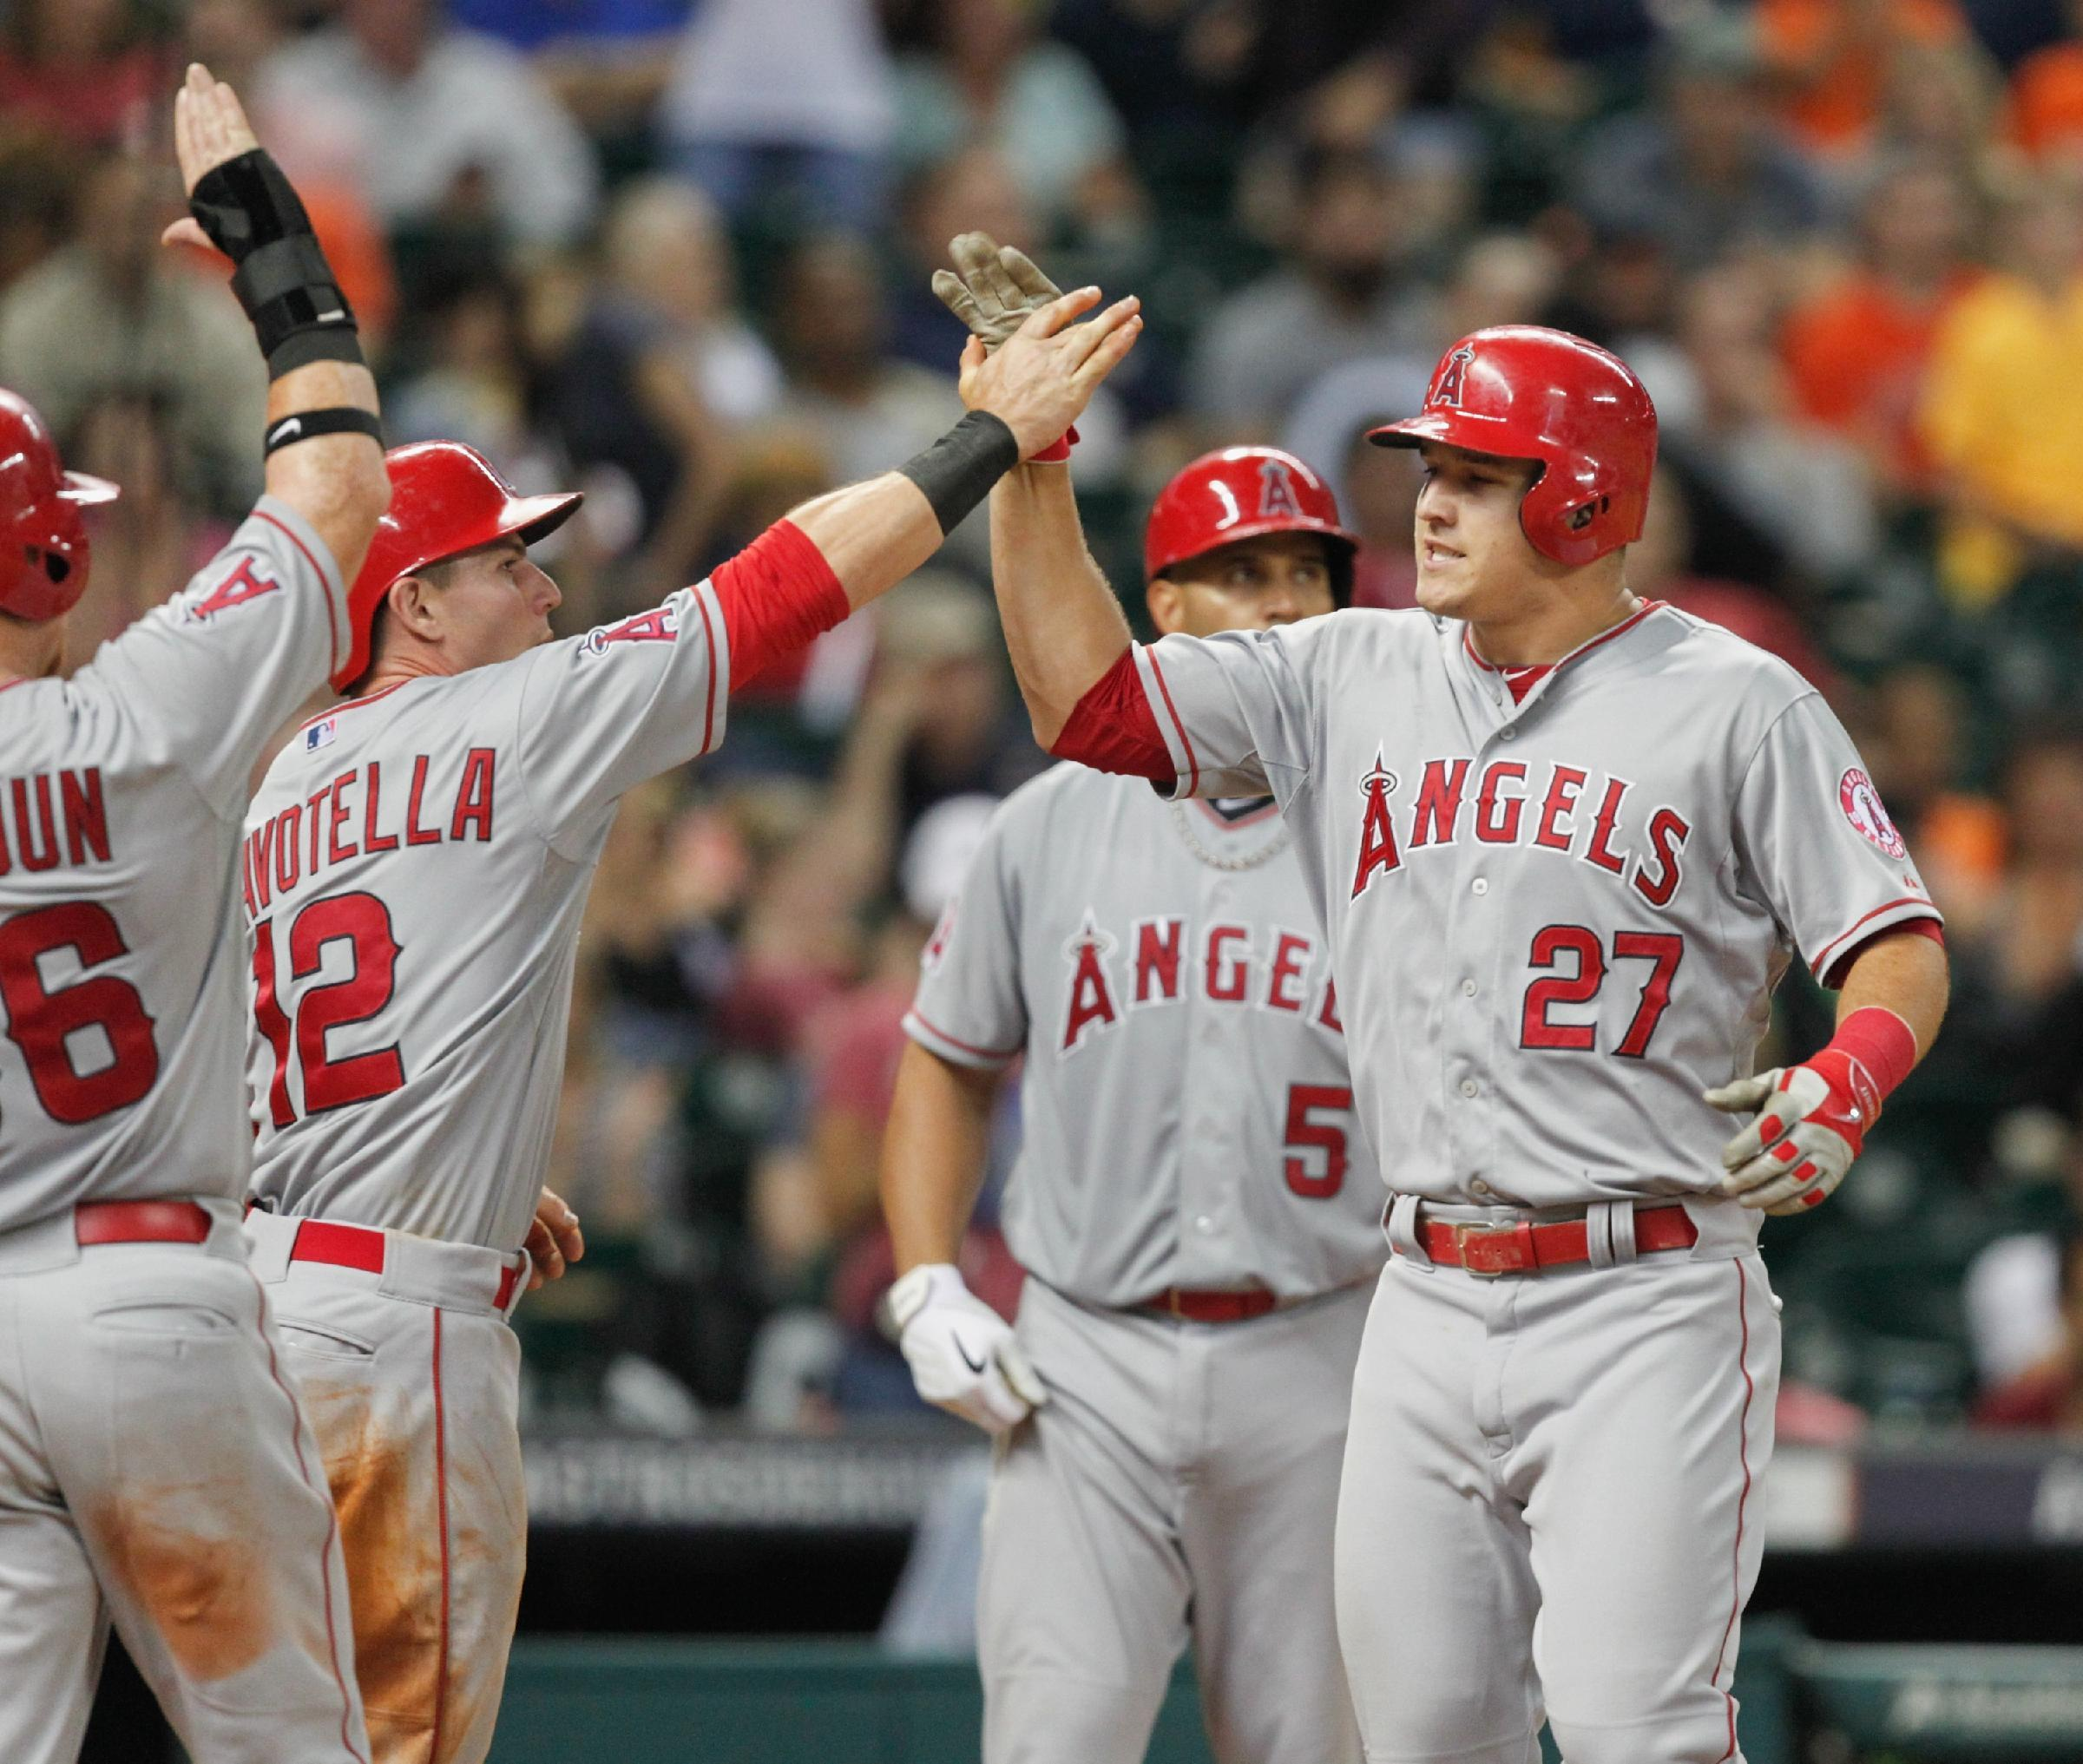 Mike Trout becomes youngest player to hit 100 home runs, steal 100 bases